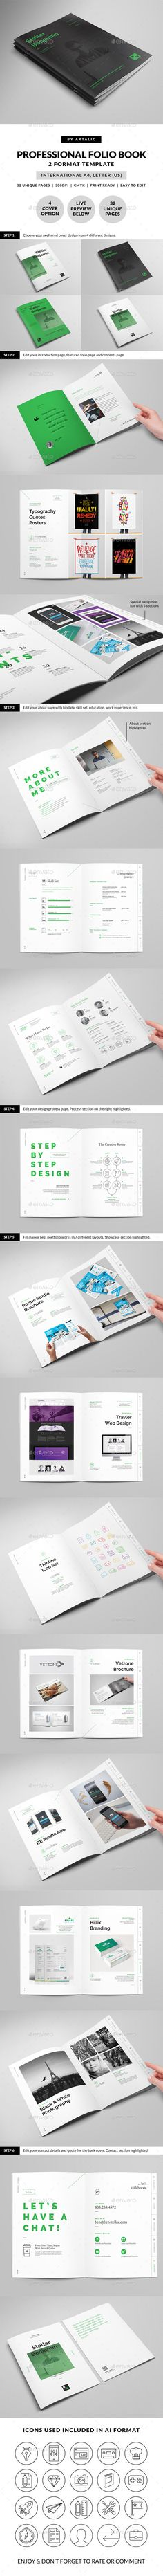 Stellar Portfolio - 32 Pages Booklet Template available for purchase on GraphicRiver